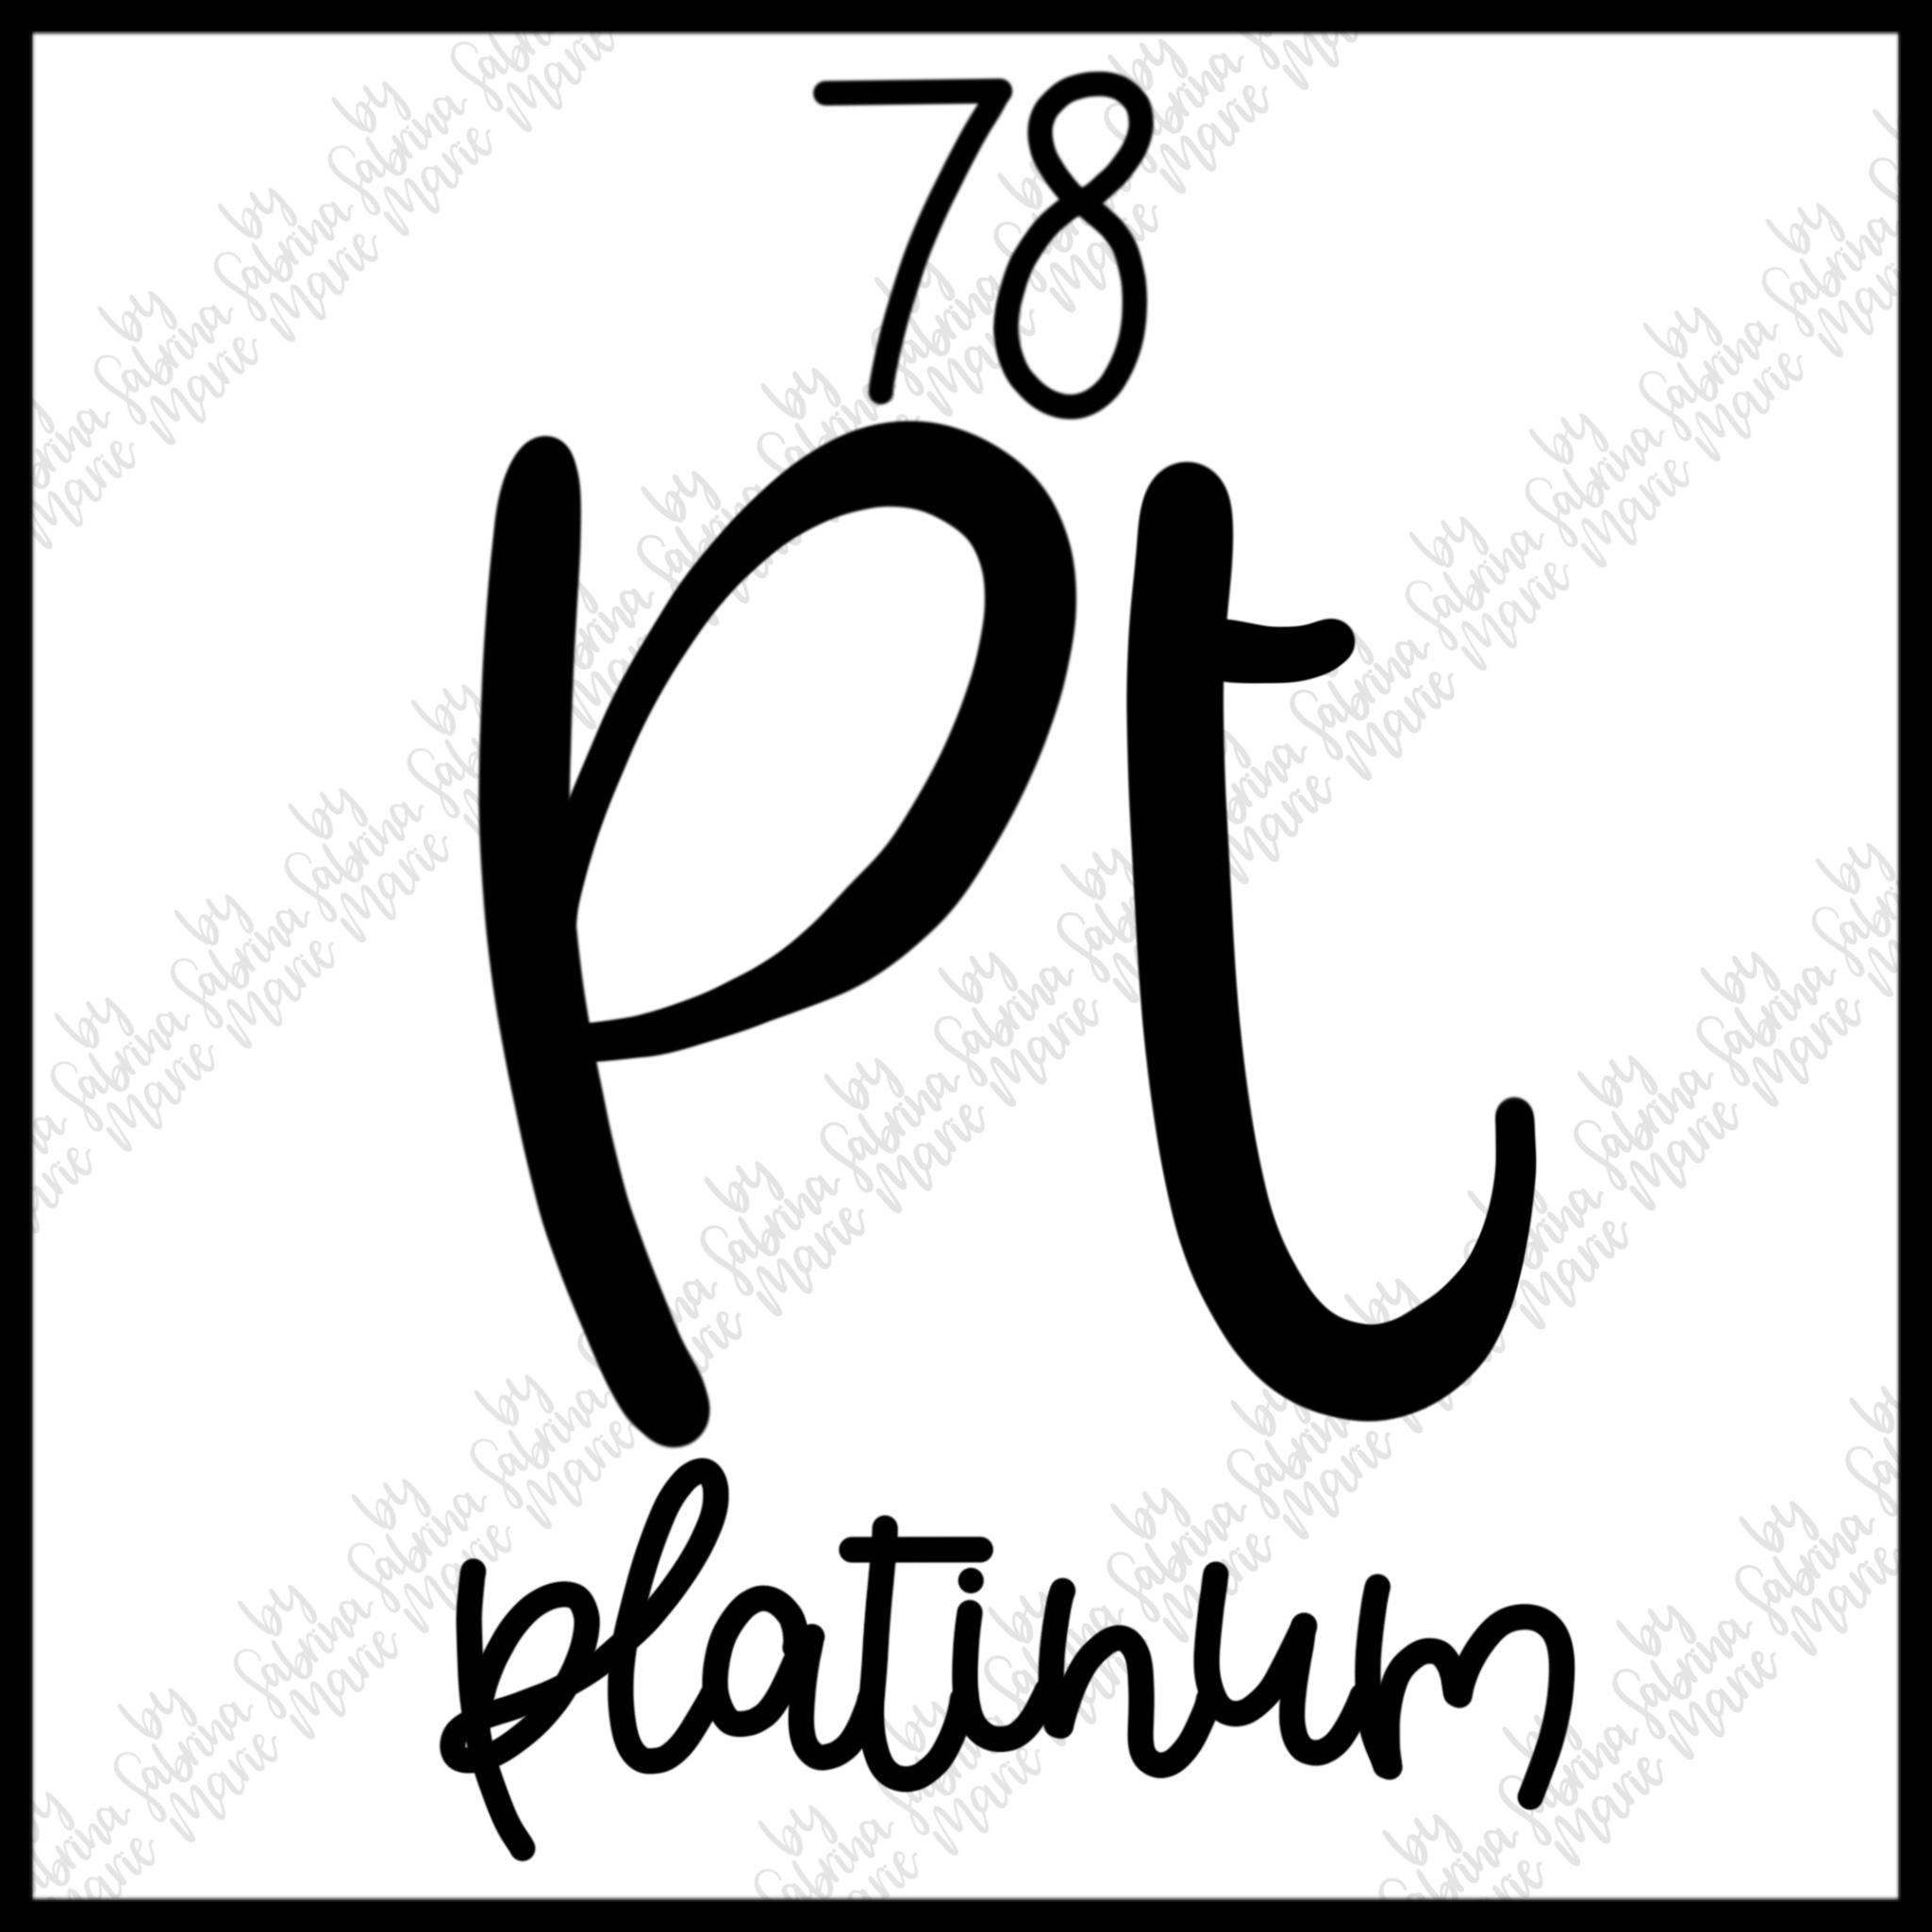 78 Platinum Handdrawn Periodic Table Element Svgpng